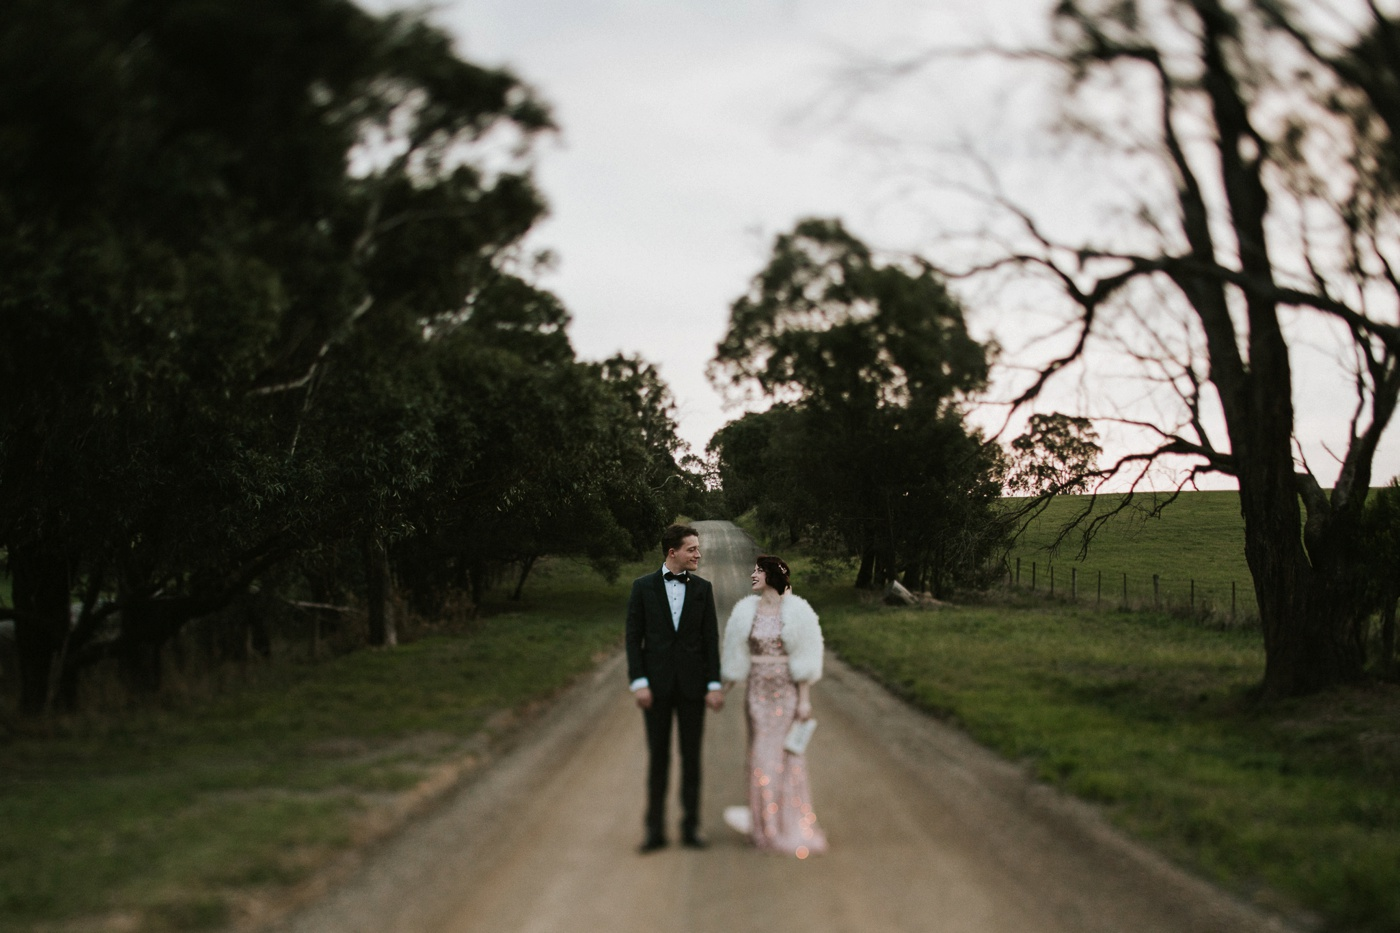 Emma&Morgan_Melbourne-Vintage-Elegant-Fun-Quirky-Yarra-Valley-Vineyard-Wedding_Melbourne-Wedding-Photography-77